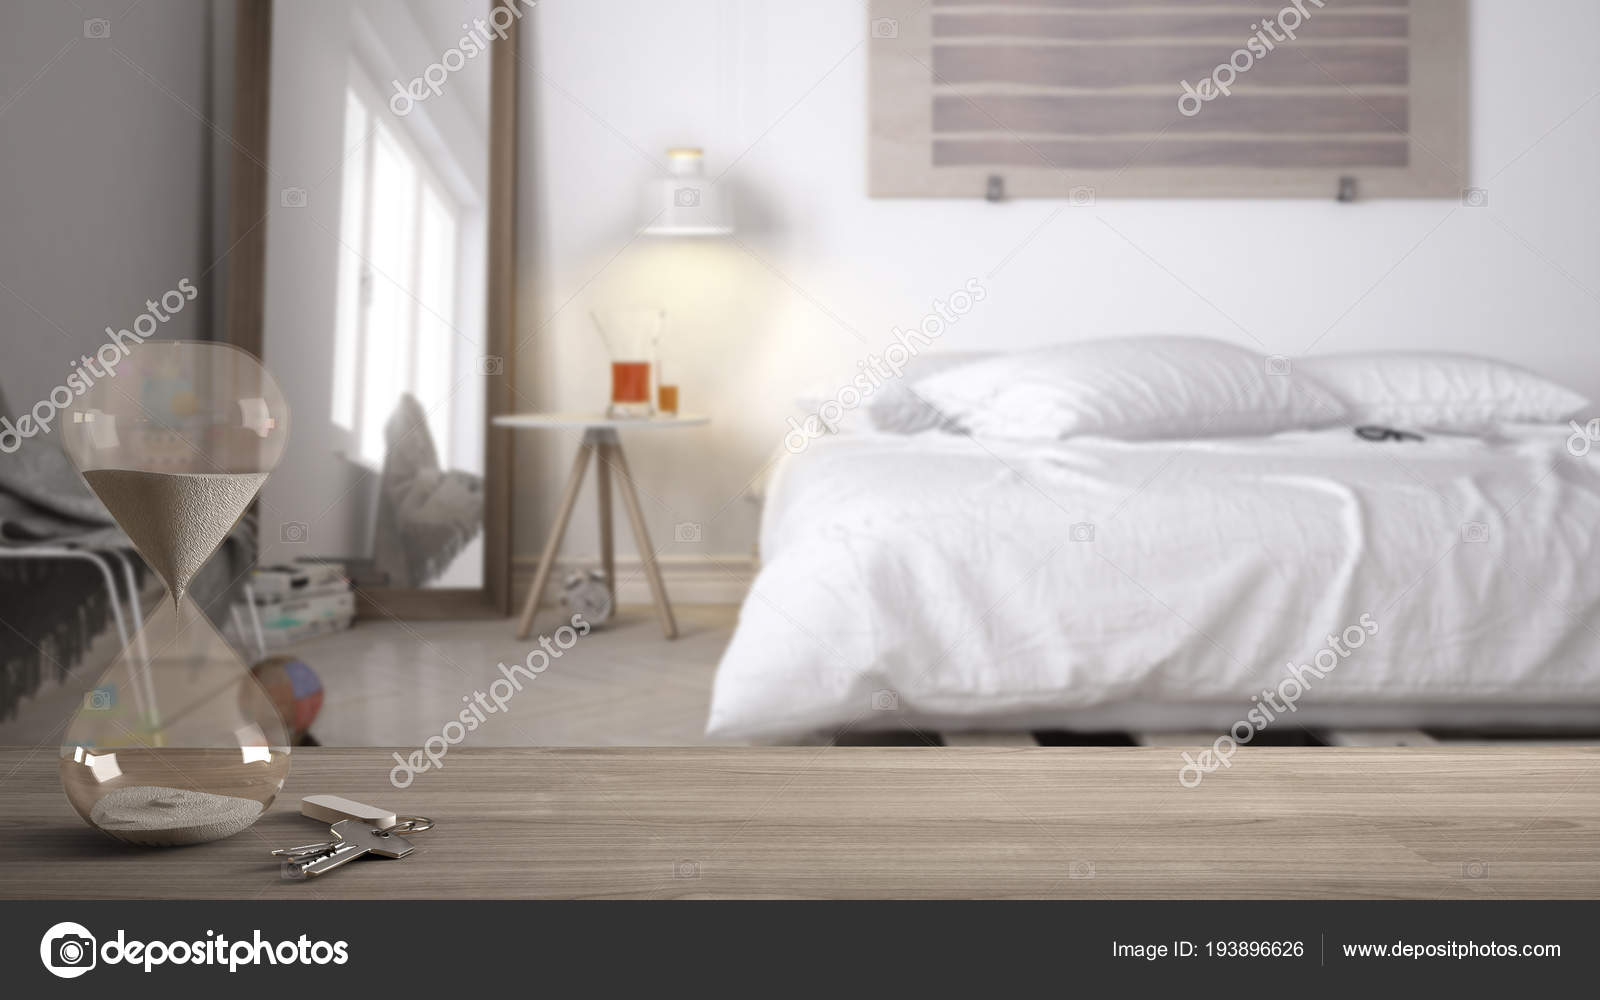 Wooden Table Desk Or Shelf With Crystal Modern Hourglass Measuring The Passing Time In A Countdown To A Deadline And House Keys Over Blurred Diy Bedroom Architecture Interior Design Copy Space Back